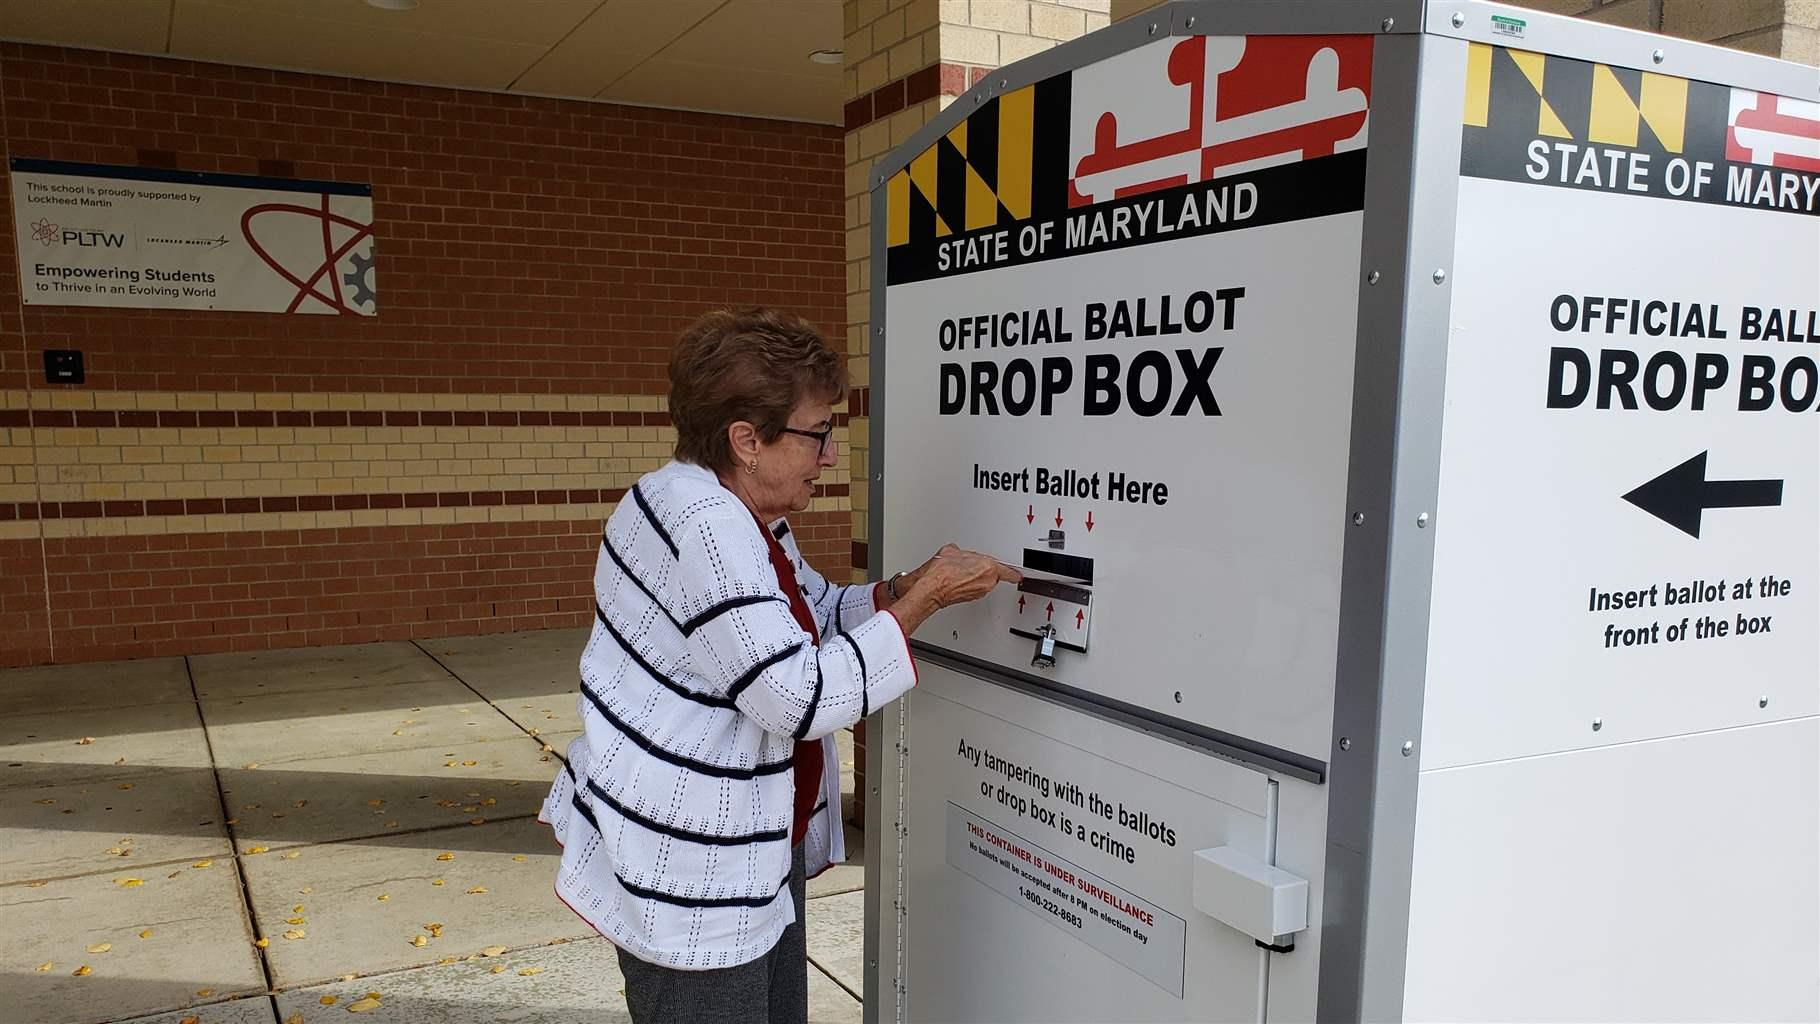 Rise In Use Of Ballot Drop Boxes Sparks Partisan Battles The Pew Charitable Trusts